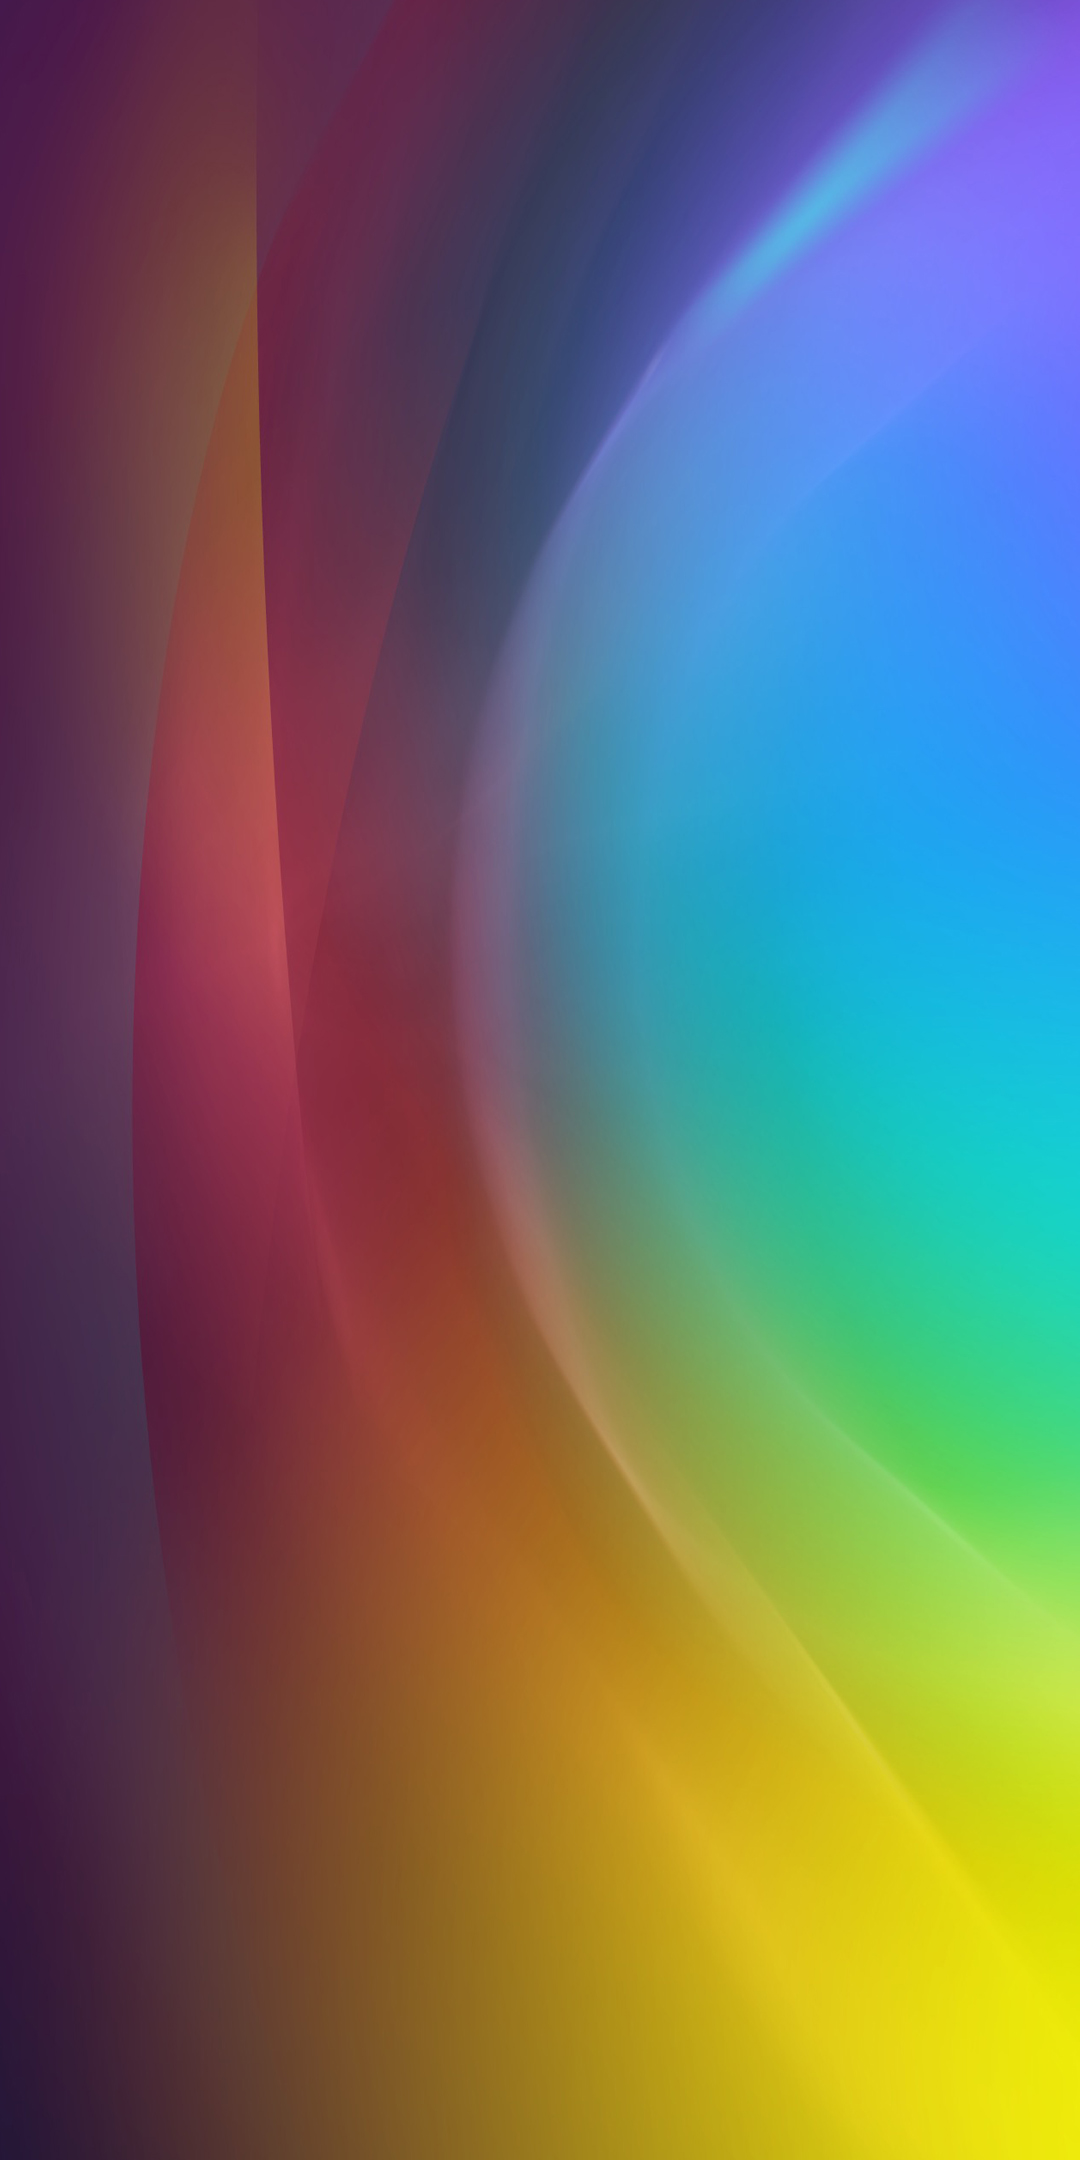 Must see Wallpaper Logo Huawei - Huawei_Mate_10_Pro_Wallpaper_01_of_10_with_Abstract_Light  Collection_172553.jpg